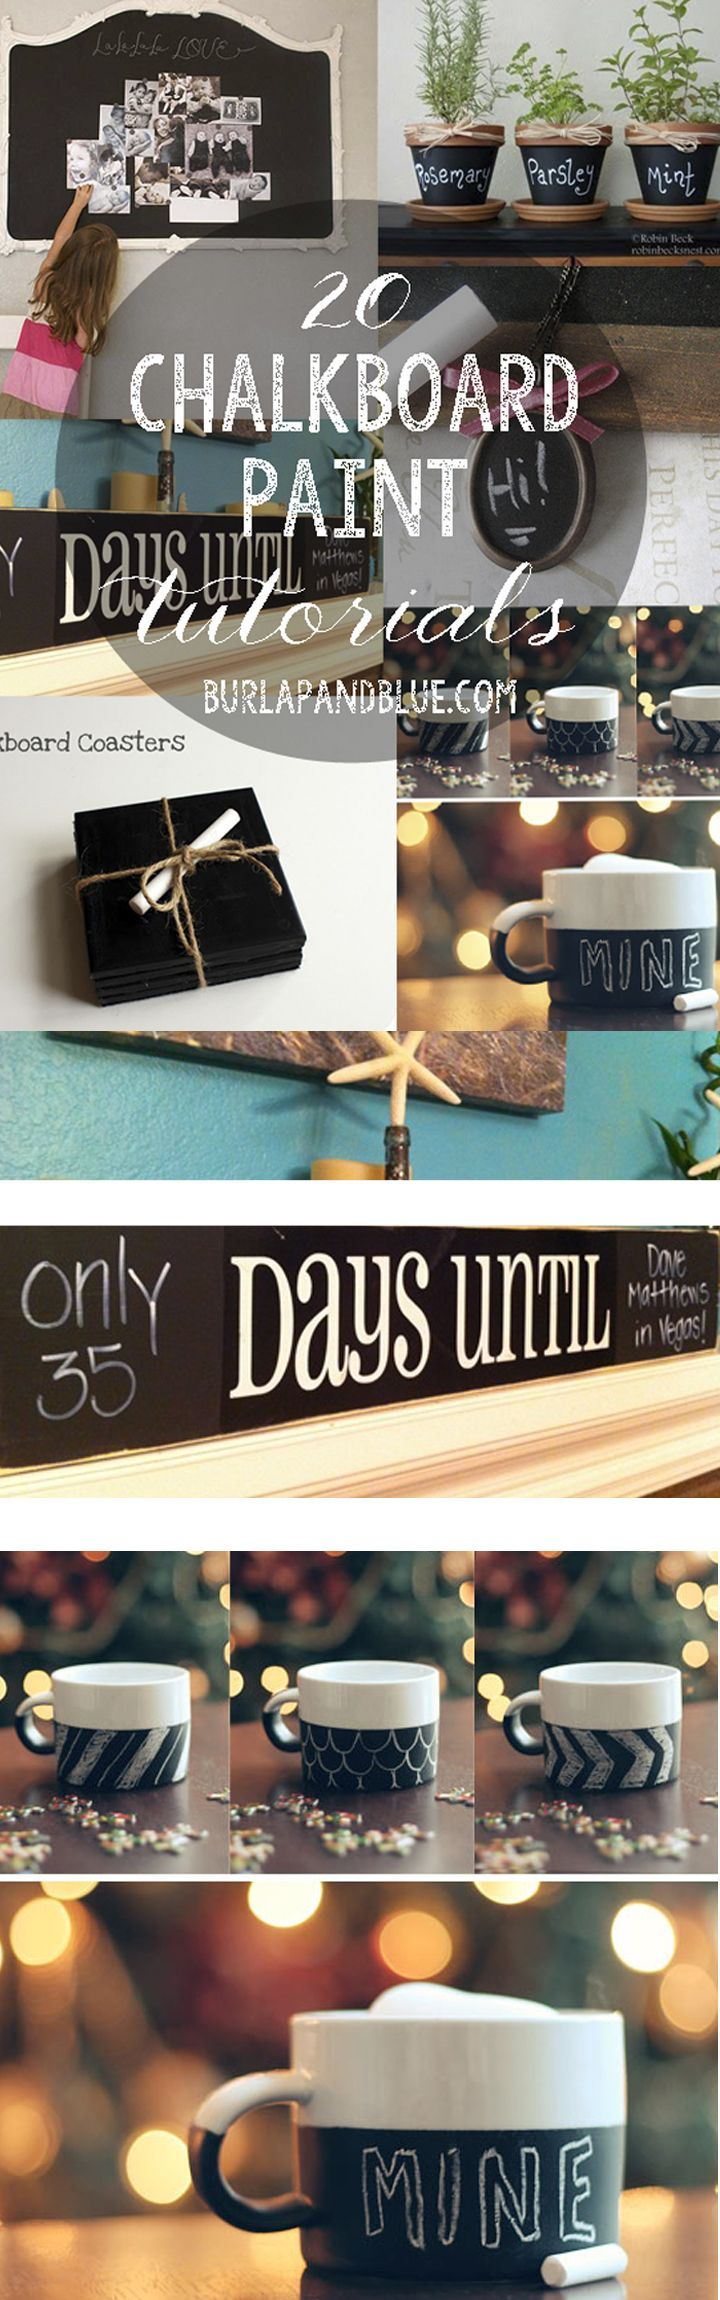 My favorite crafts and tutorials using chalkboard paint! Chalkboard paint can be used for many different projects. Jump on this new train that everyone is starting to love.